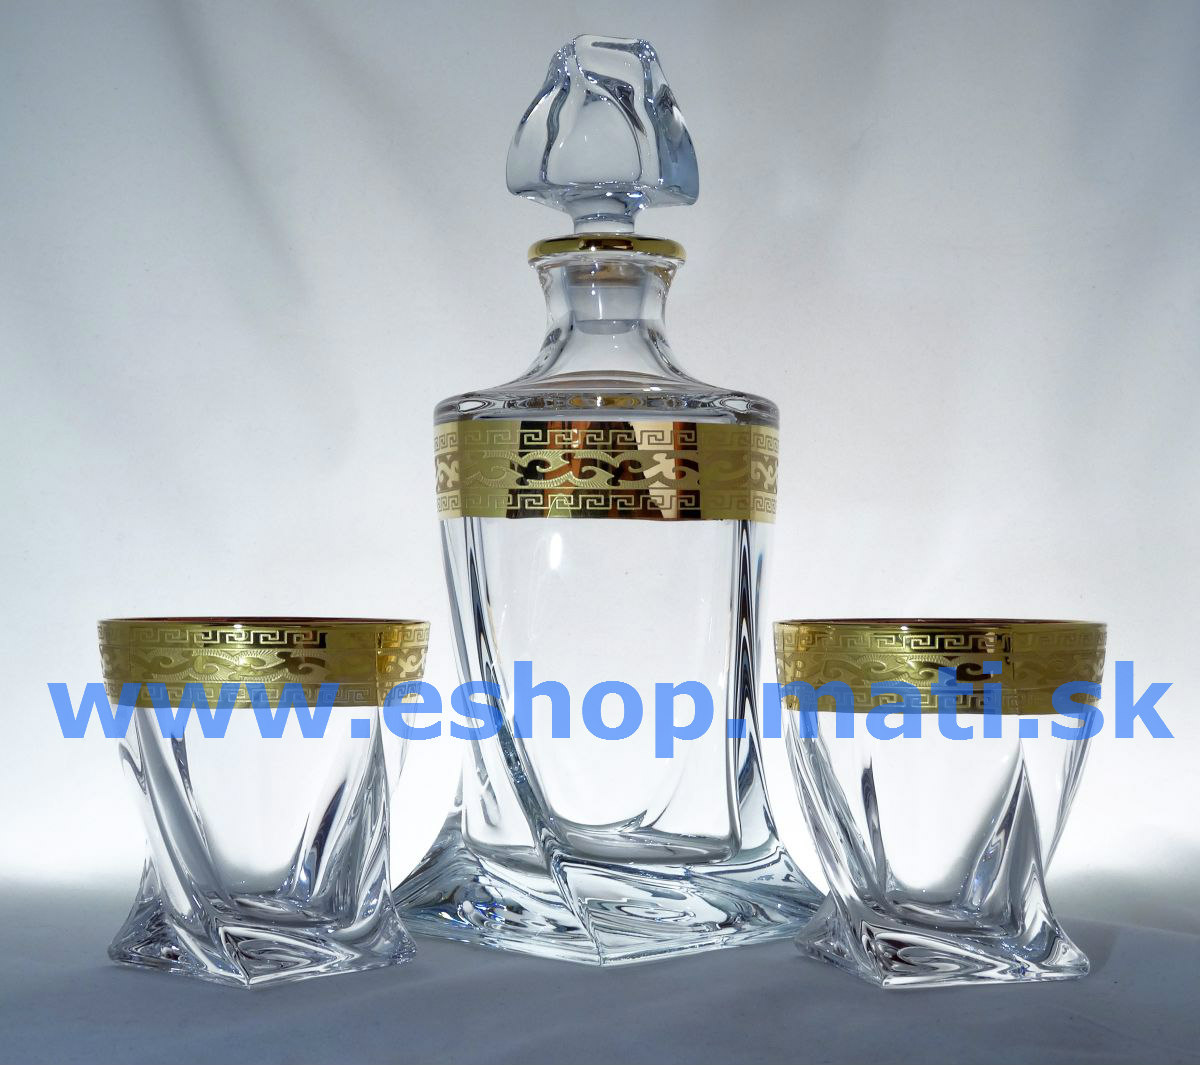 Quadro whiskey set f+6 dekor 374 zlato